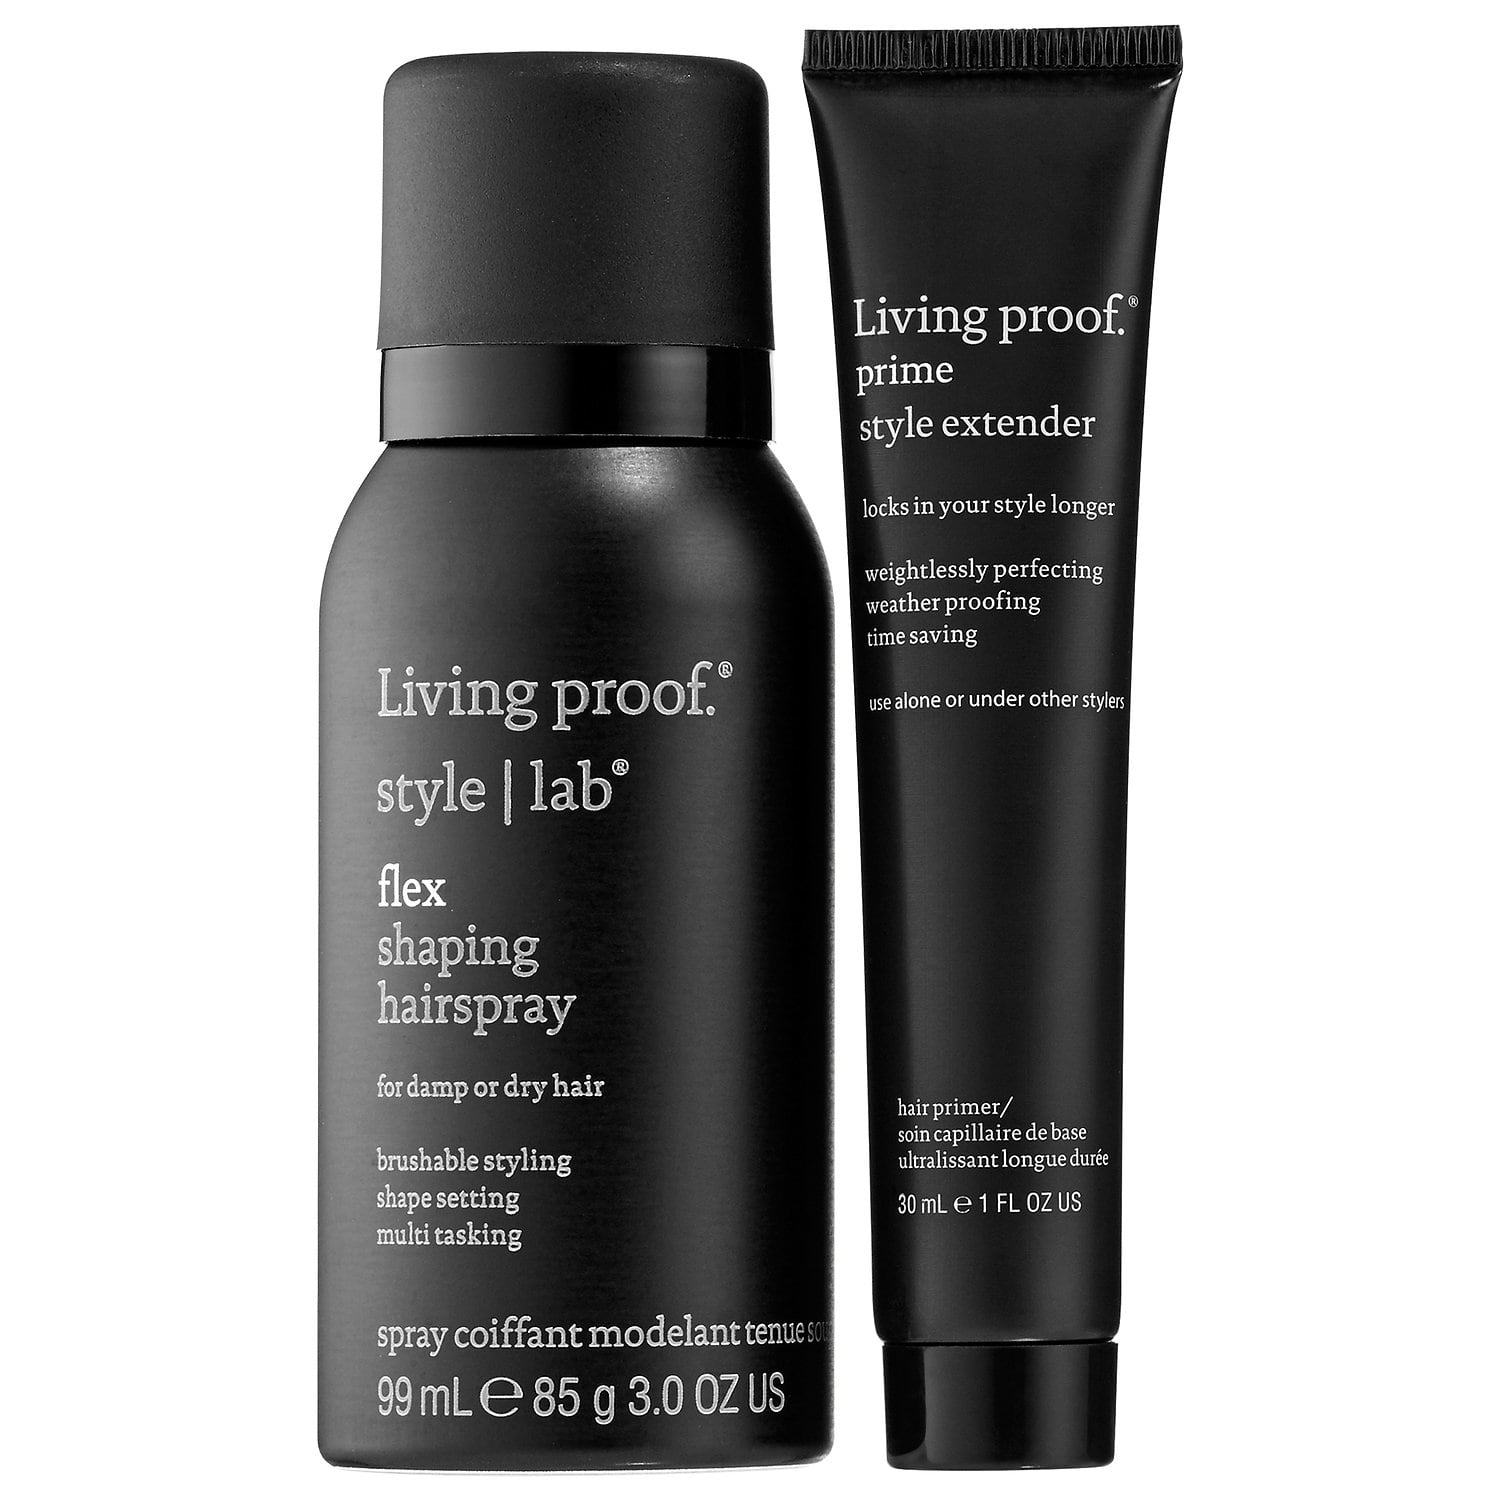 Living proof style lab — Стайлинговые средства